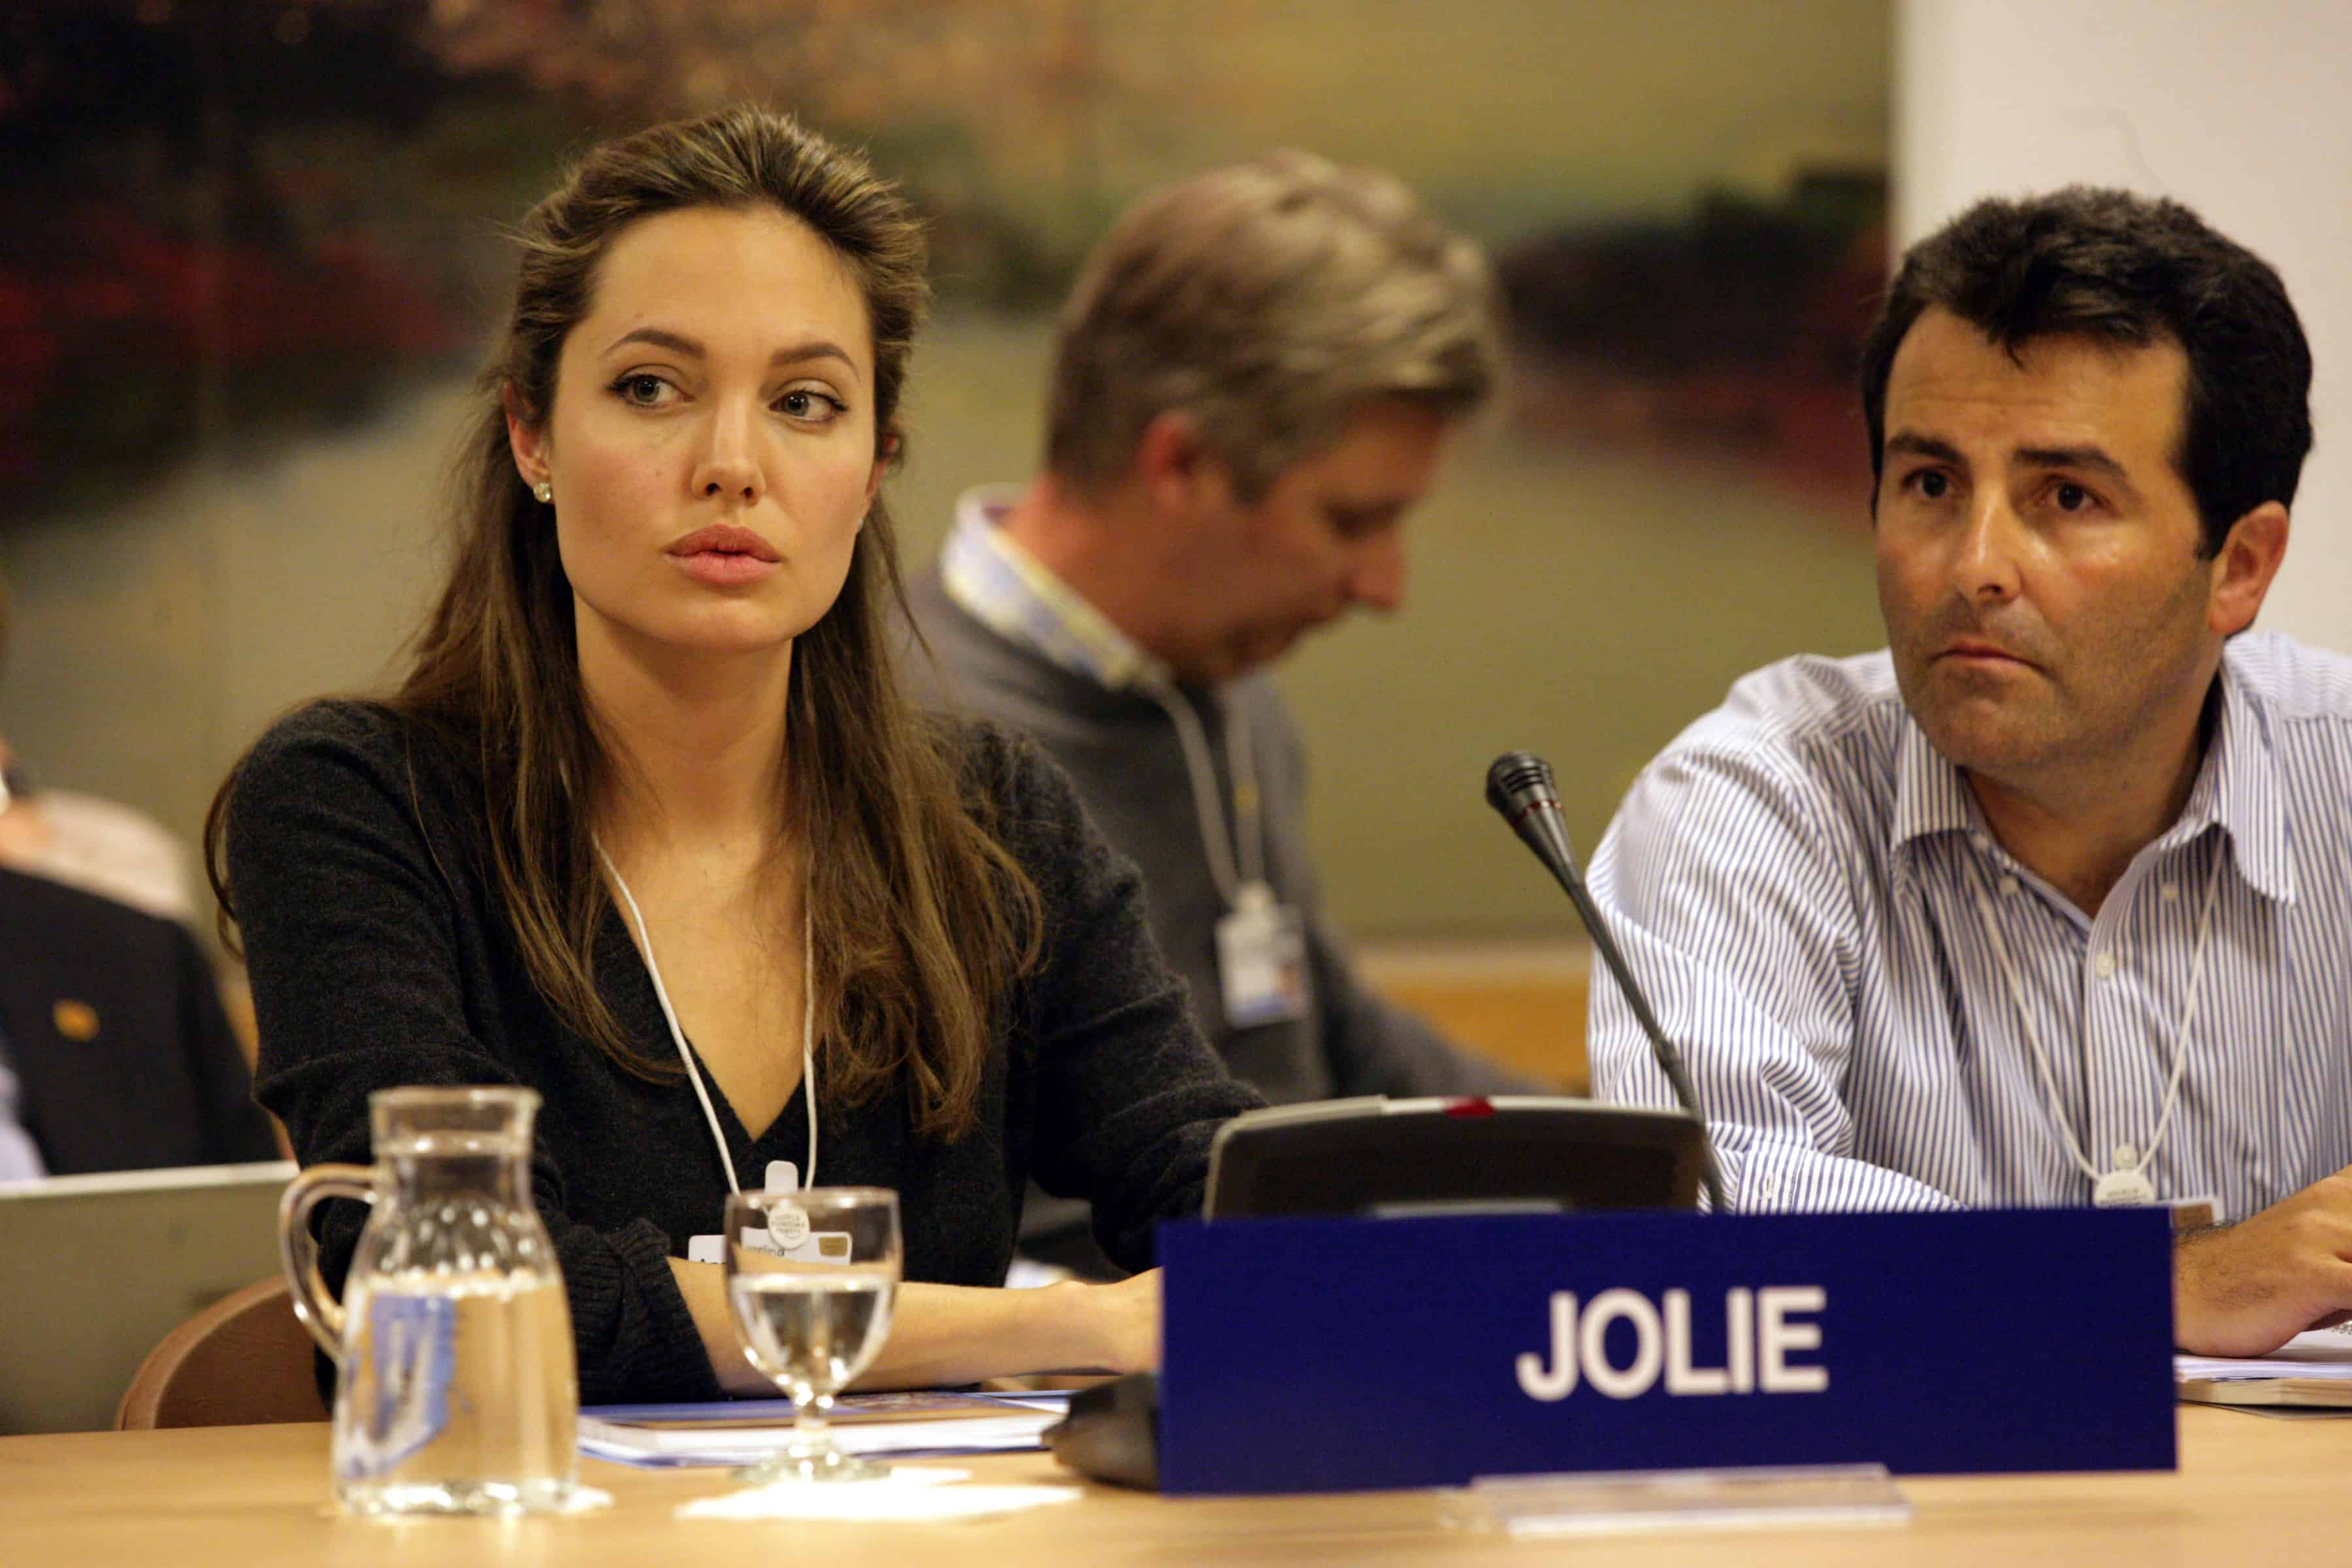 DAVOS/SWITZERLAND, 27JAN05 - Angelina Jolie, Goodwill Ambassador, United Nations High Commissioner for Refugees (UNHCR), Geneva, captured during the workshop 'Getting the Millenium Development Goals Back on Track' at the Annual Meeting 2005 of the World Economic Forum in Davos, Switzerland, January 27, 2005.  Copyright by World Economic Forum    swiss-image.ch/Photo by Severin Nowacki +++No resale, no archive+++